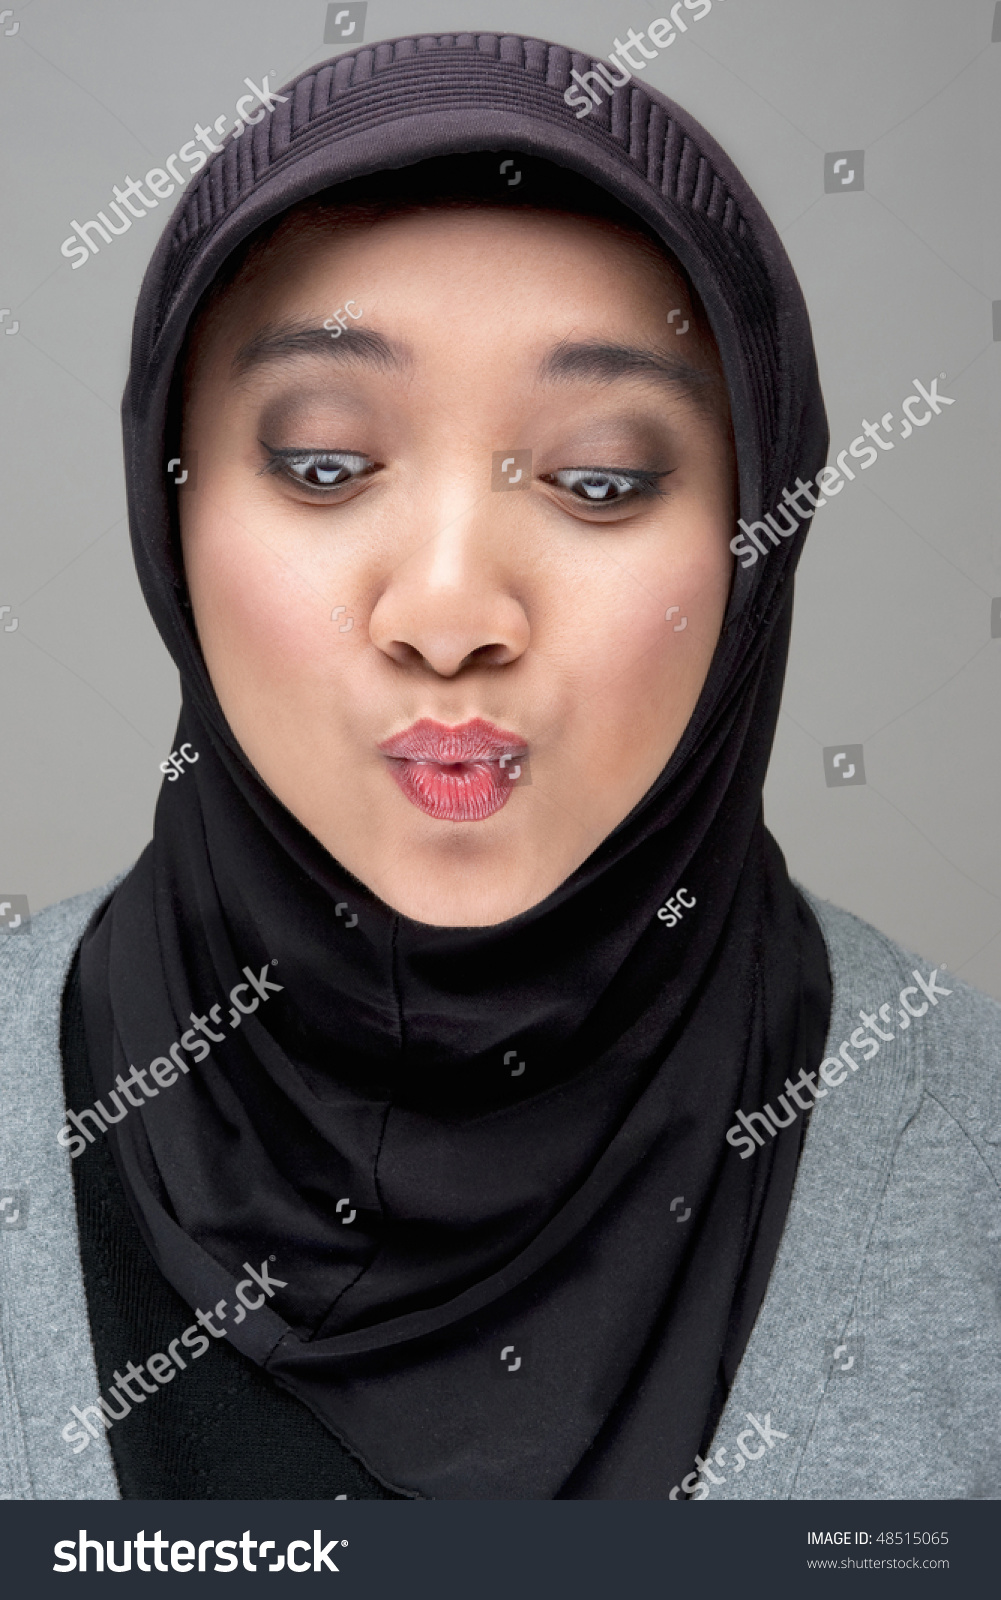 surprise muslim single women Flashback: doctor exposes muslim woman's unsanitary practice, pays high price by do you think that a muslim surgeon should be allowed to wear a headscarf.